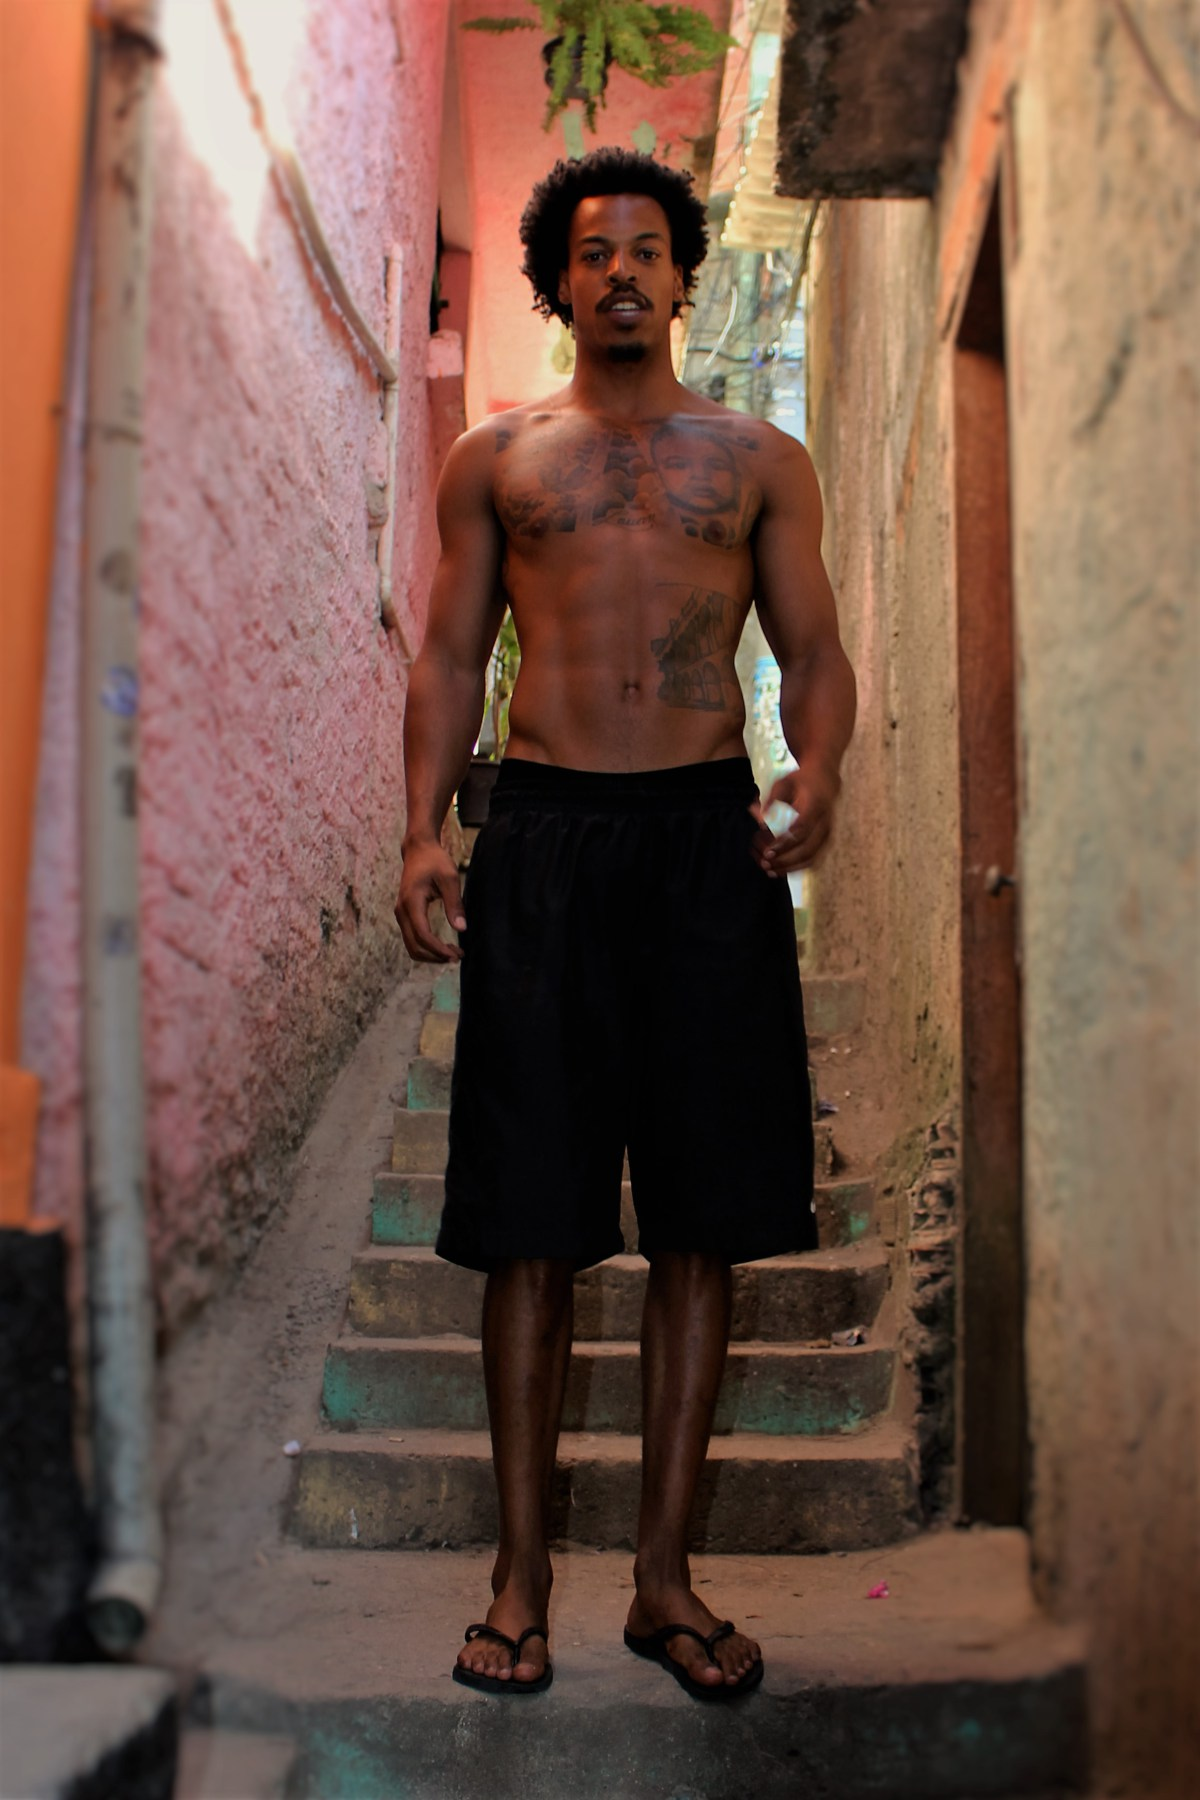 Oberdan standing on a staircase in Vidigal